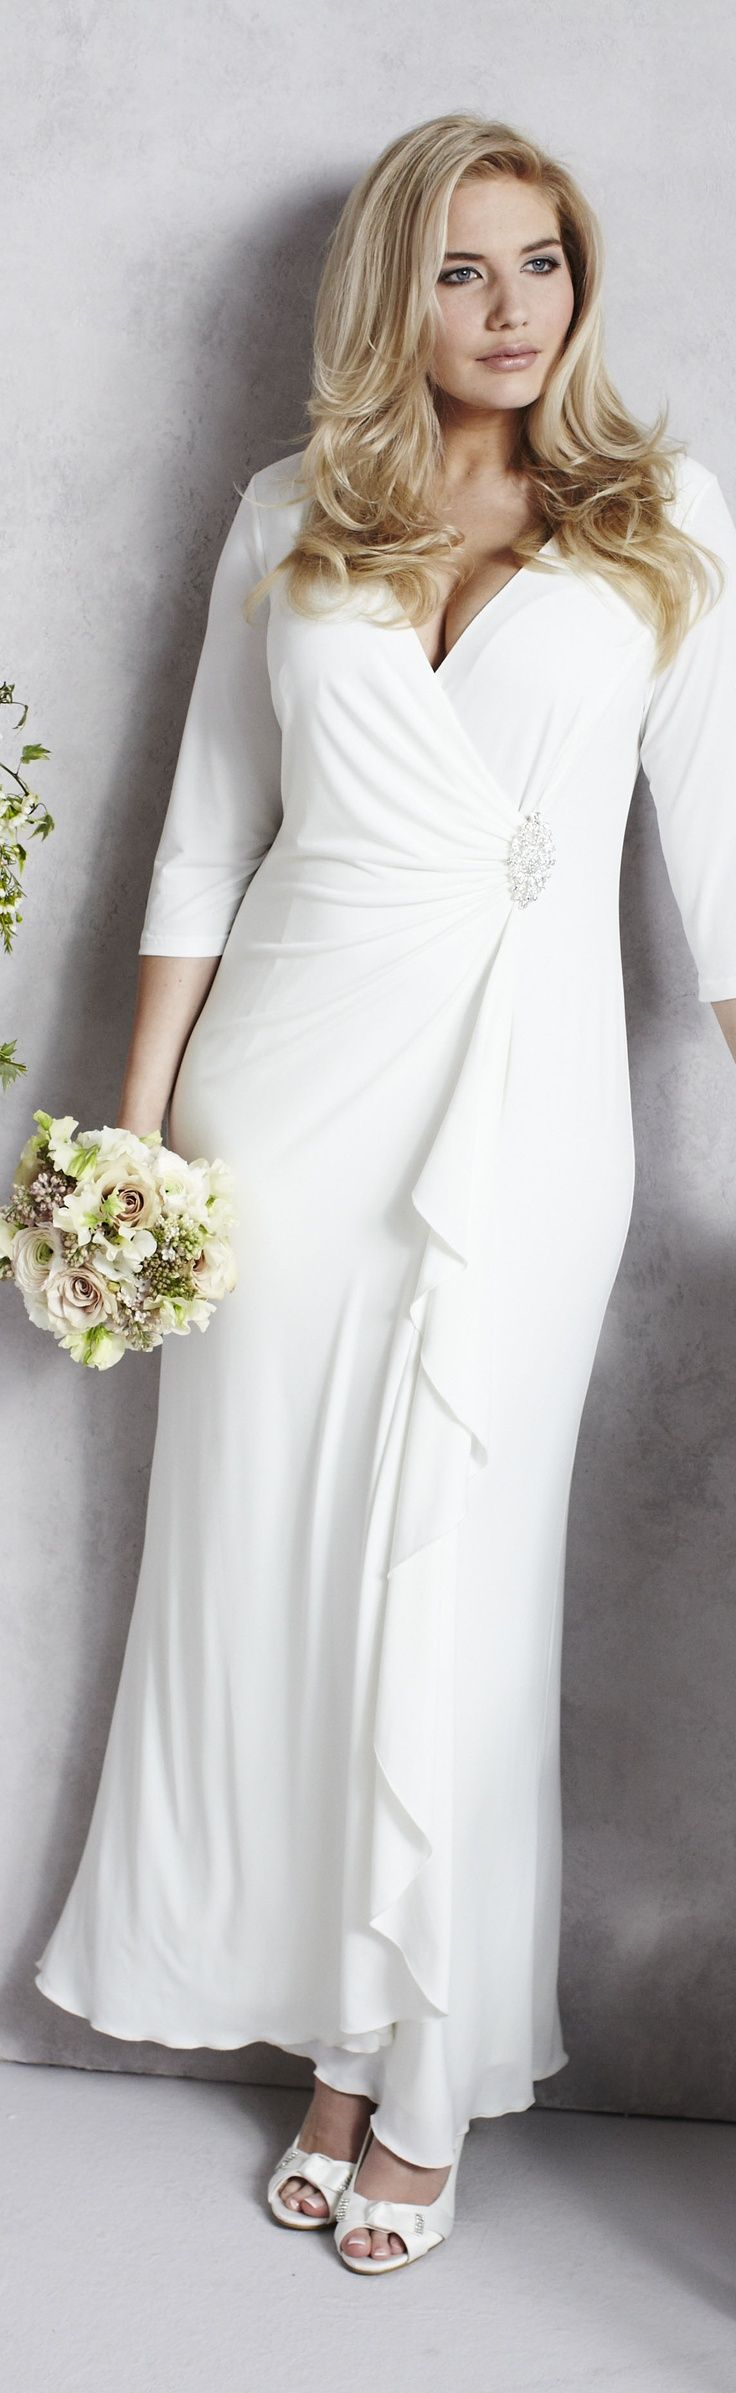 25 best ideas about mature bride dresses on pinterest for Wedding dresses for casual second weddings